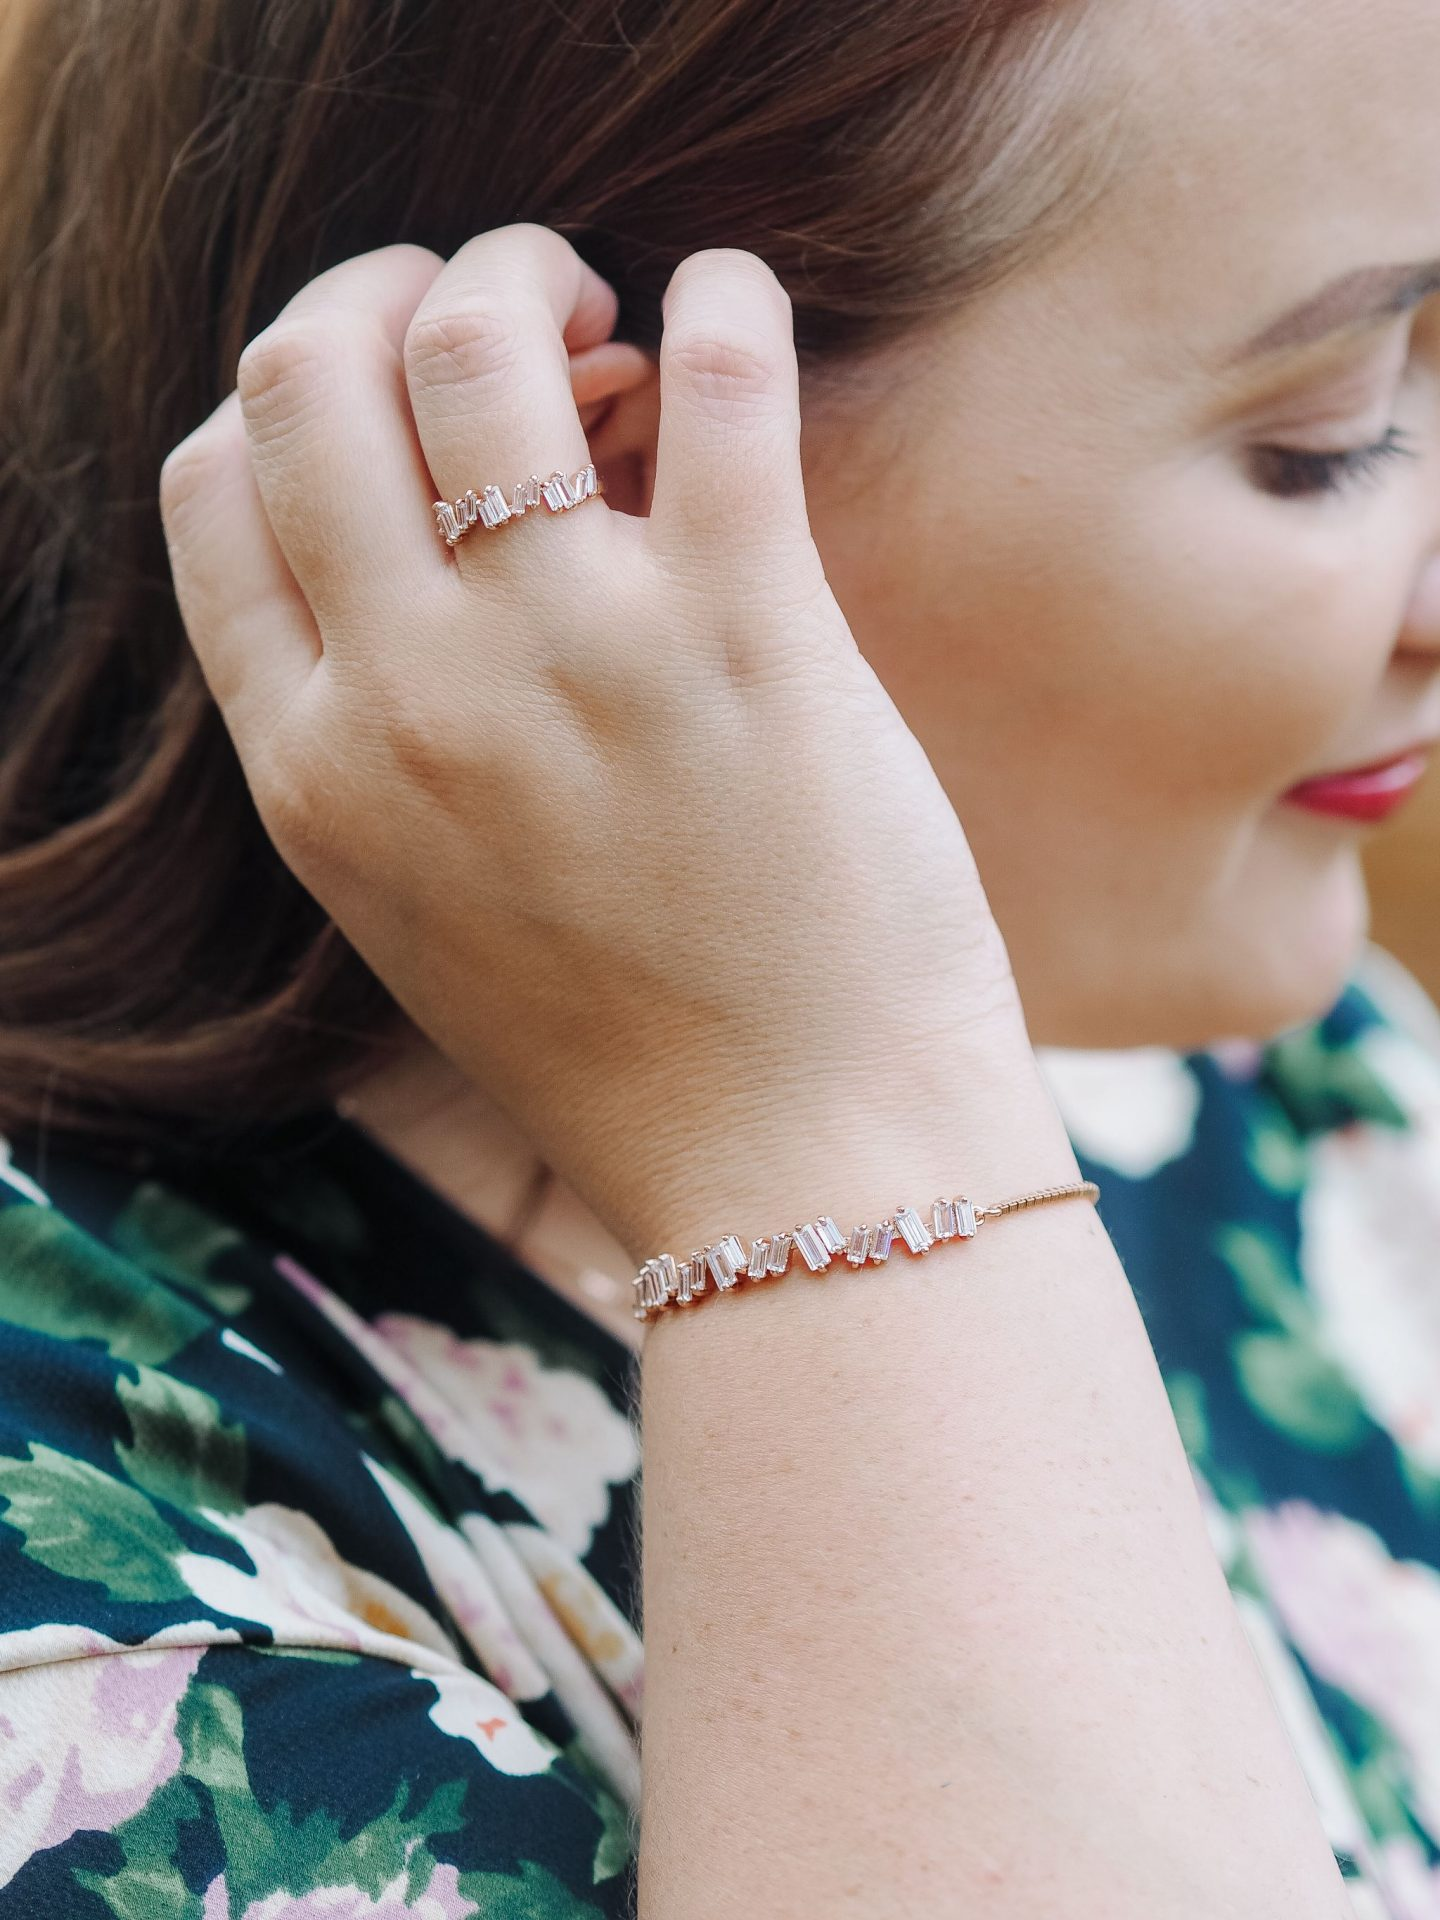 Obsessed With Accessorizing: My Top Five Tips To Accessorize Effortlessly